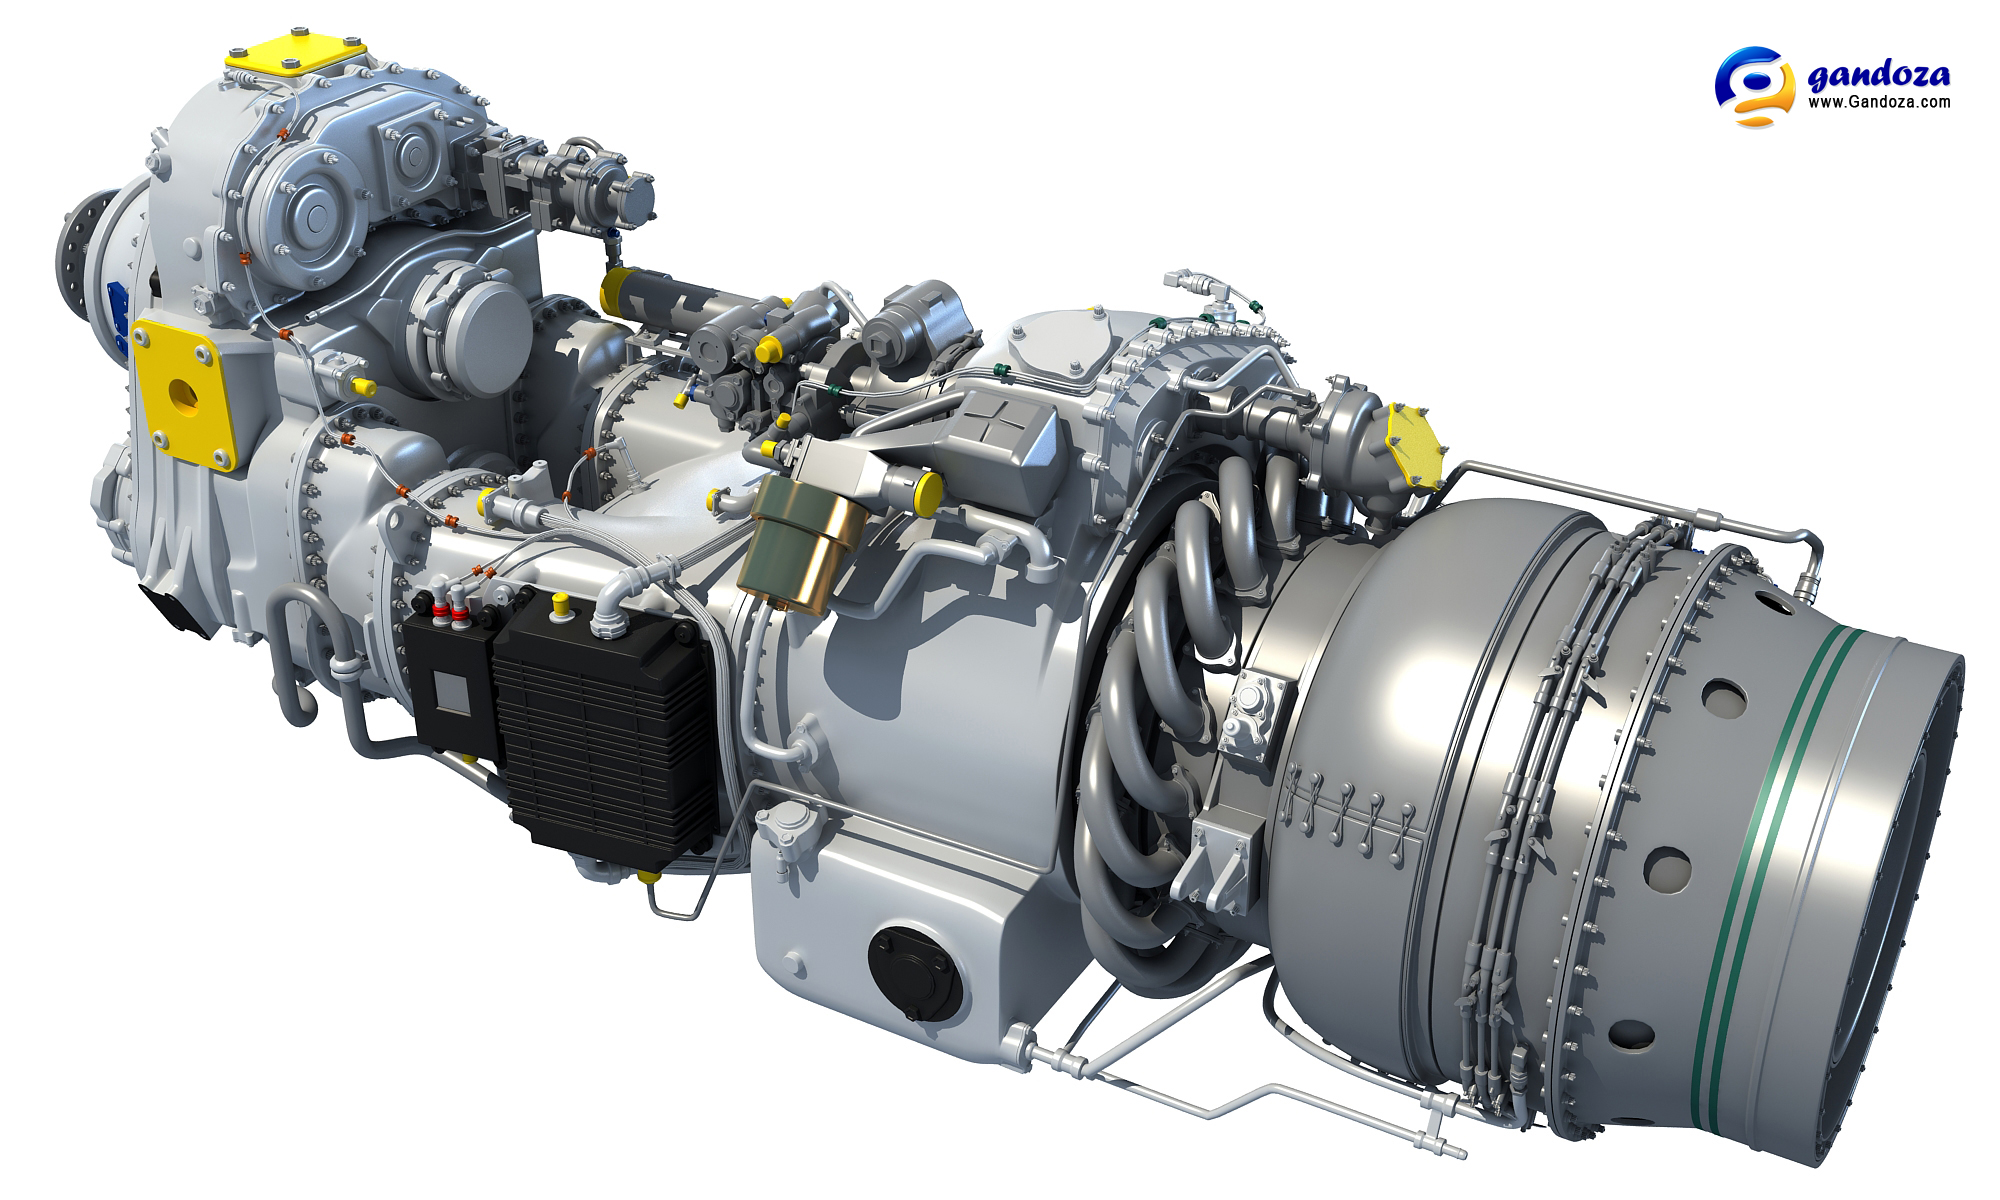 turbo schematic diagram with 3d Model Of Pratt Whitney  100 Turboprop Engine 417504458 on Hm2 Heavy Metal furthermore Nj161ts01 furthermore Disassembling And Dissecting A Detroit Diesel 8v 71 in addition Lets talk about raptor additionally Fichier Turbojet operation Axial flow Fr.